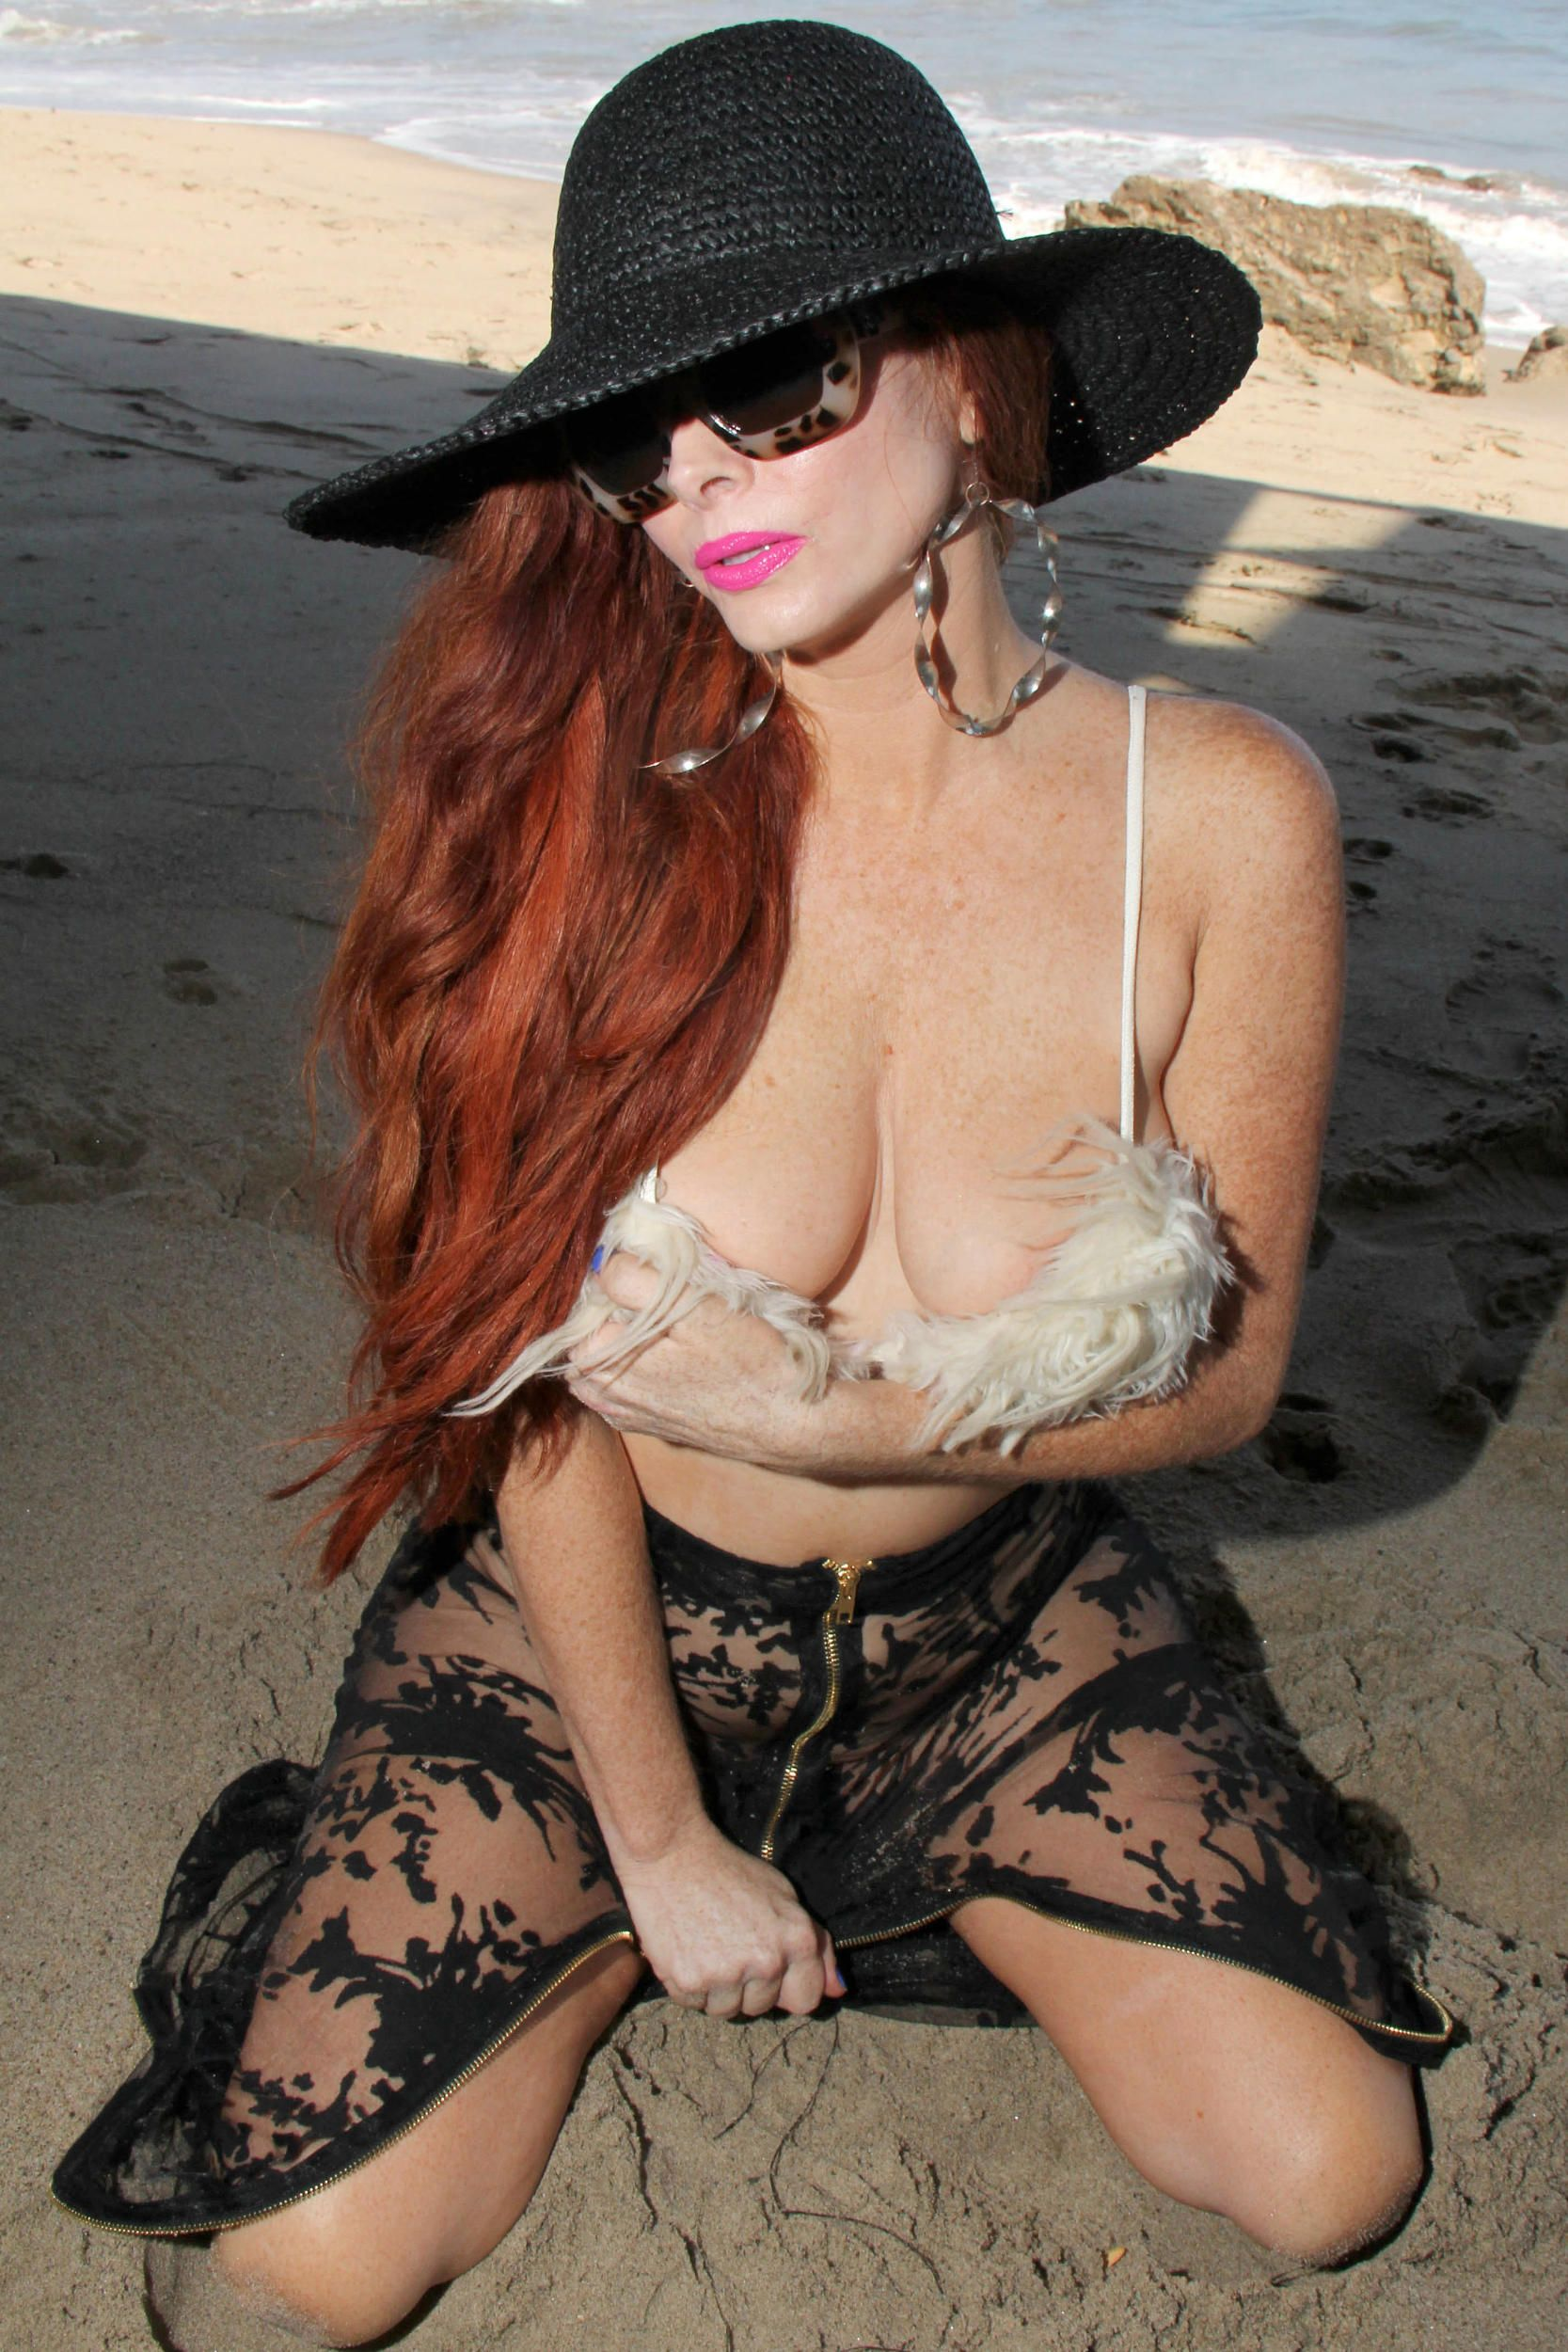 Phoebe Price Topless 1 TheFappening.nu